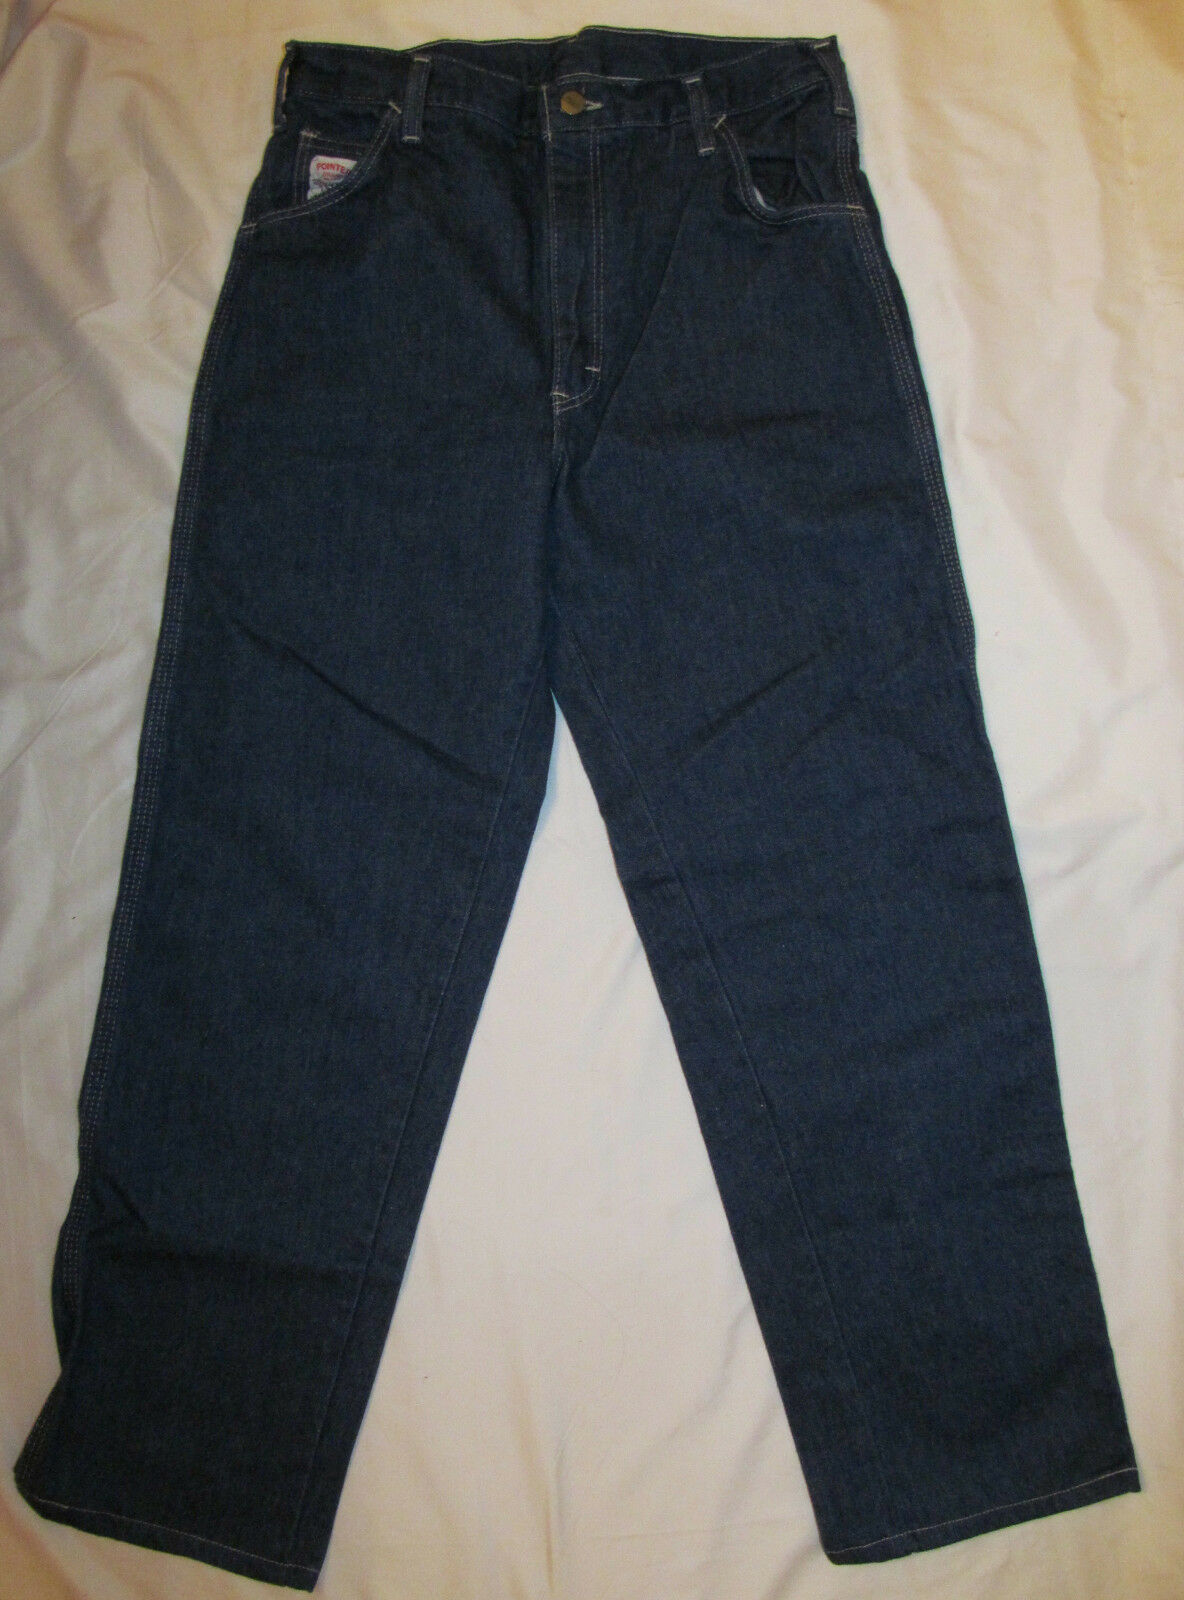 Vintage POINTER Dungaree boot cut straight leg high waist jeans 10 S NWT